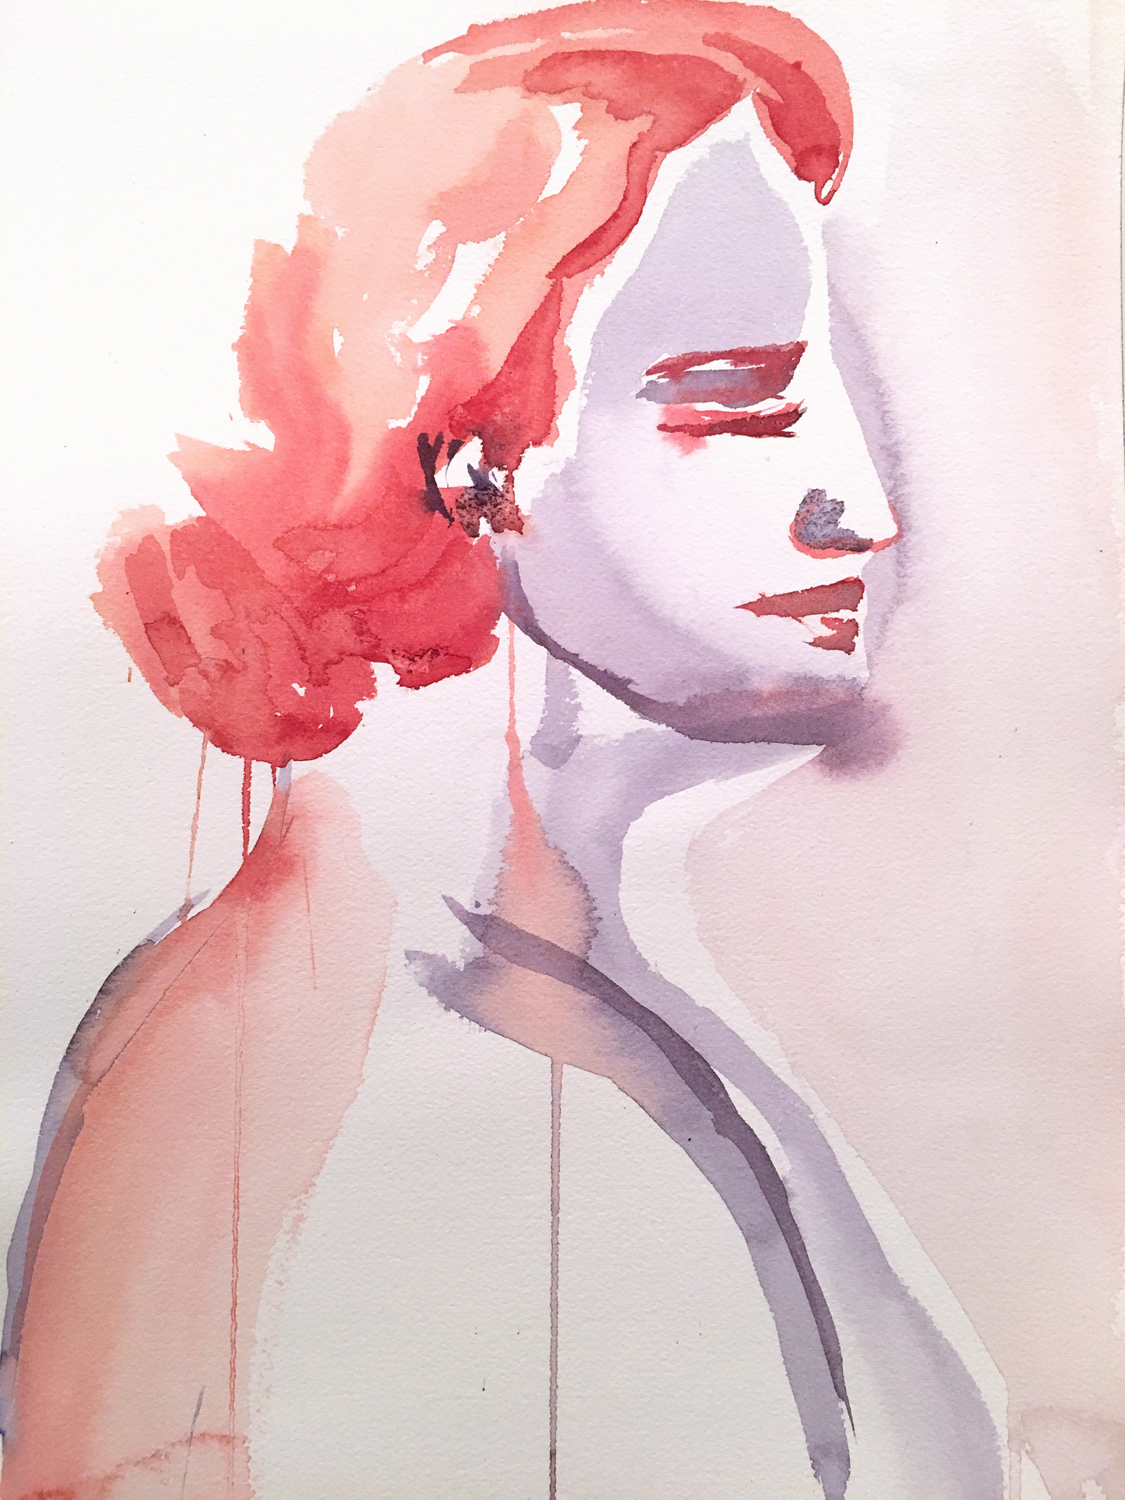 Helen-Watercolor-on-paper-by-Indira-Cesarine-004.jpg